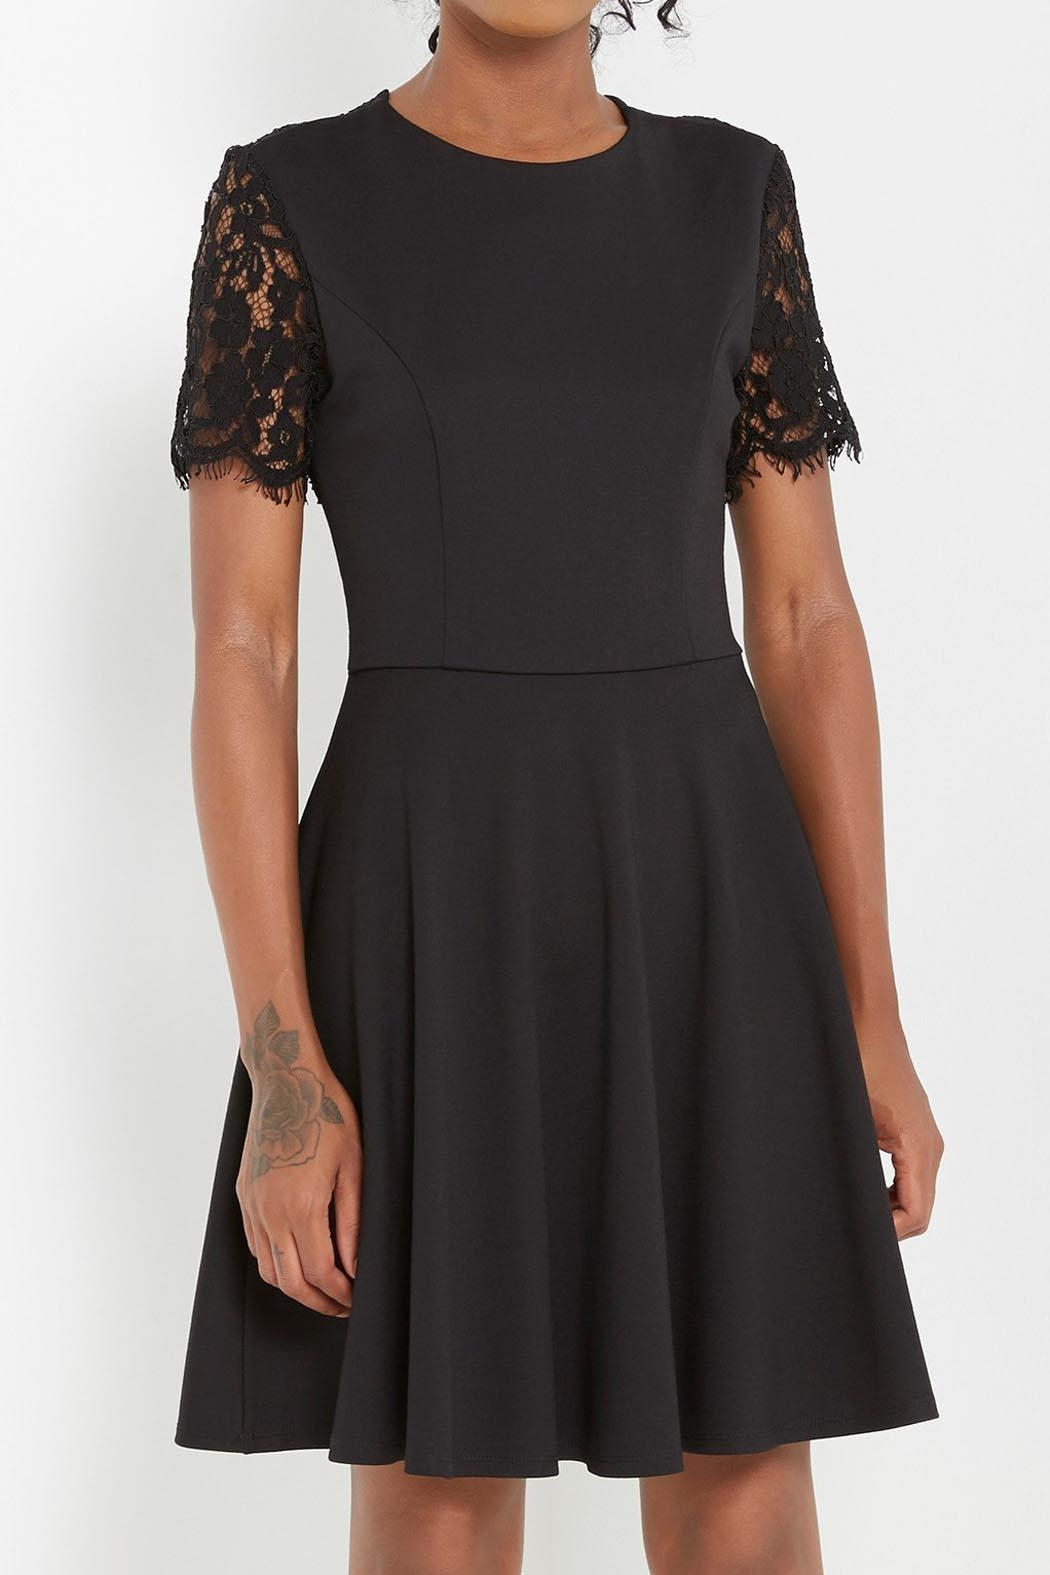 Soprano Black Lace Dress - Front Full Image